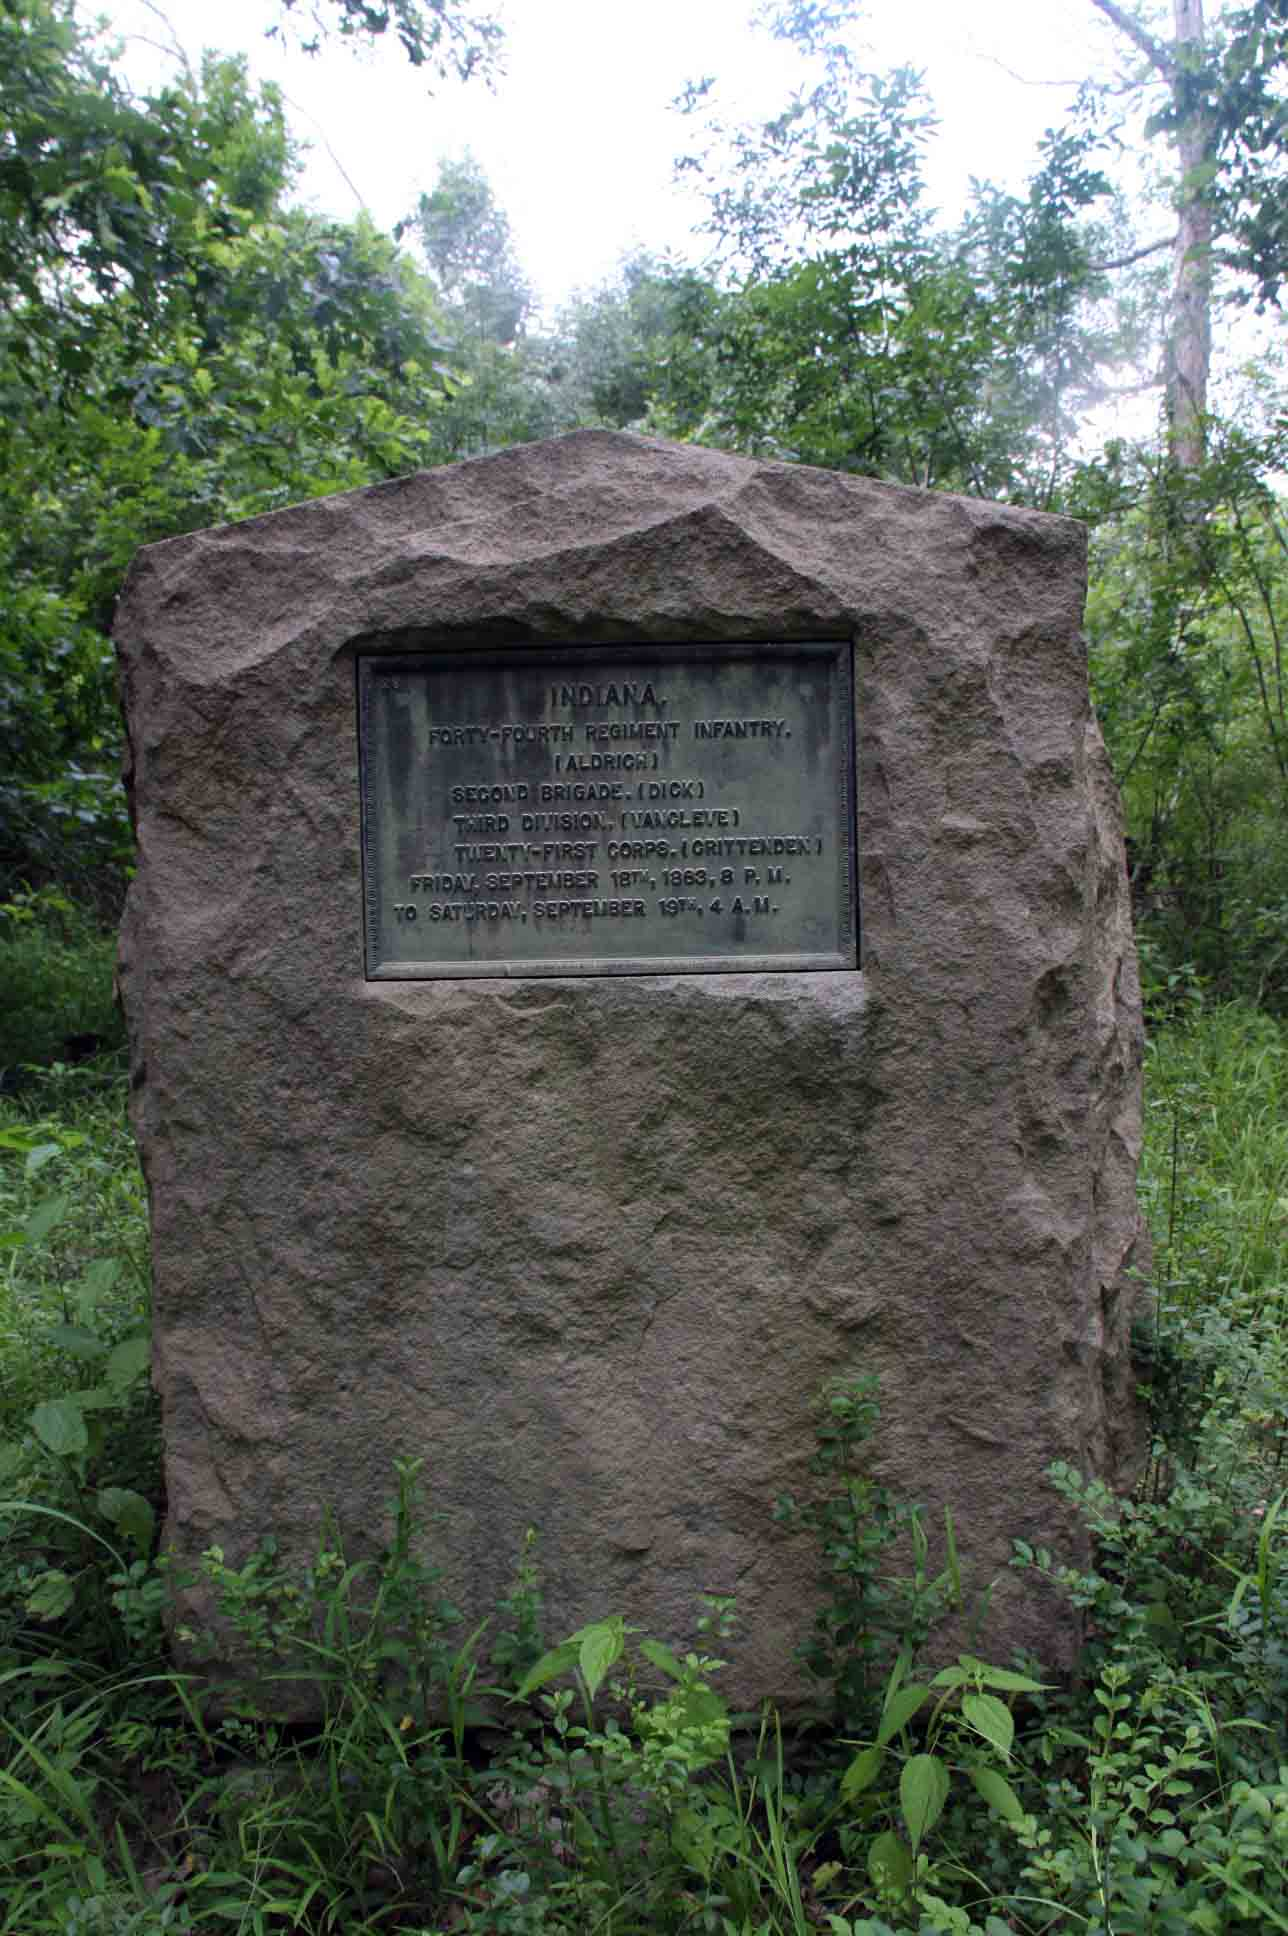 44th Indiana Infantry Regiment Marker, click photo to enlarge.